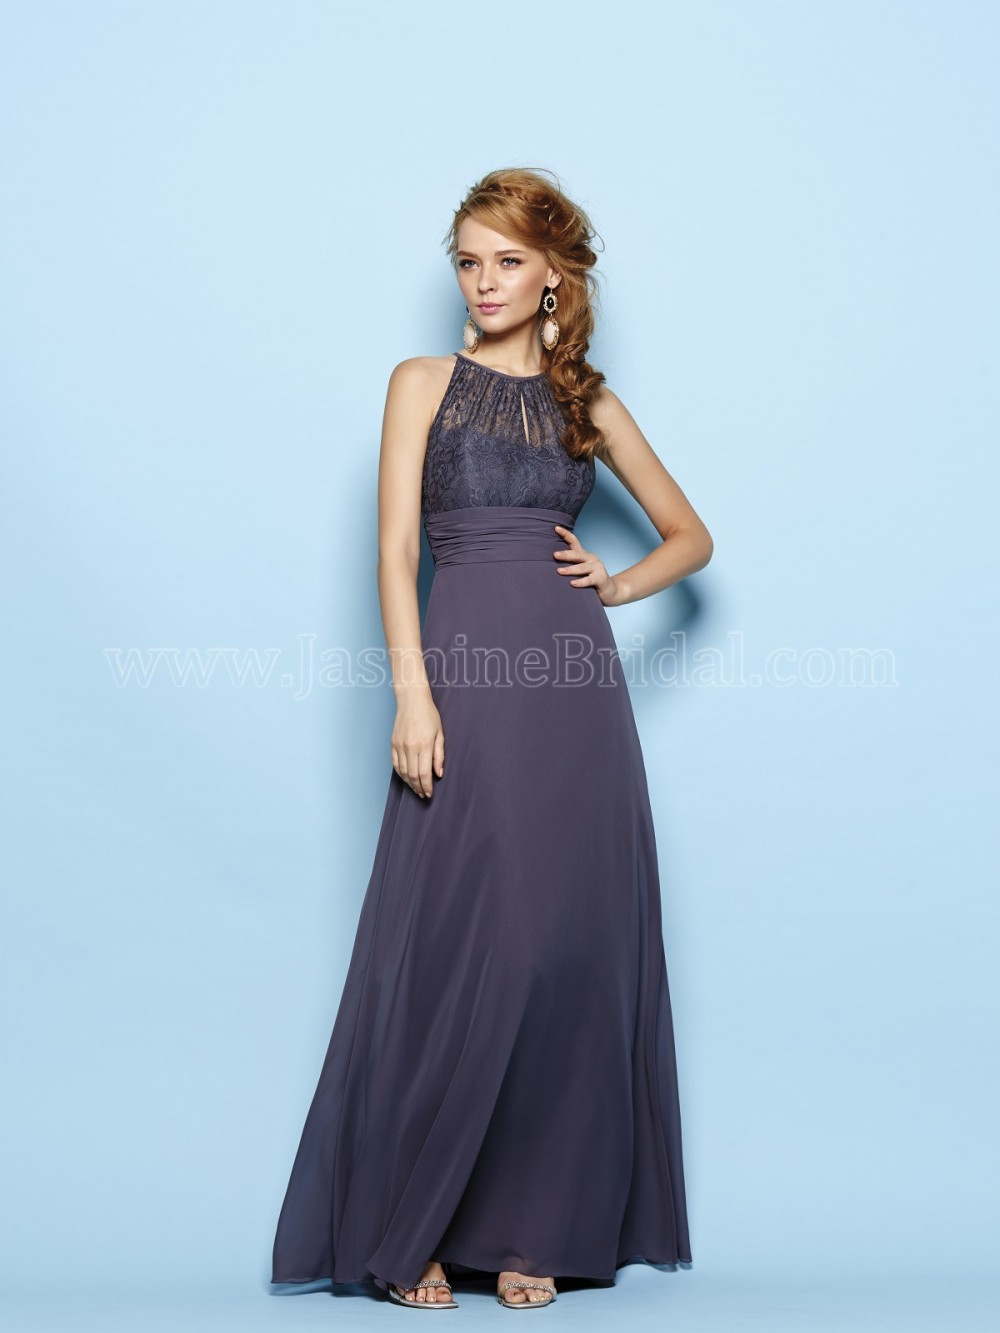 Bridesmaids dresses at Precious Memories by award winning designers